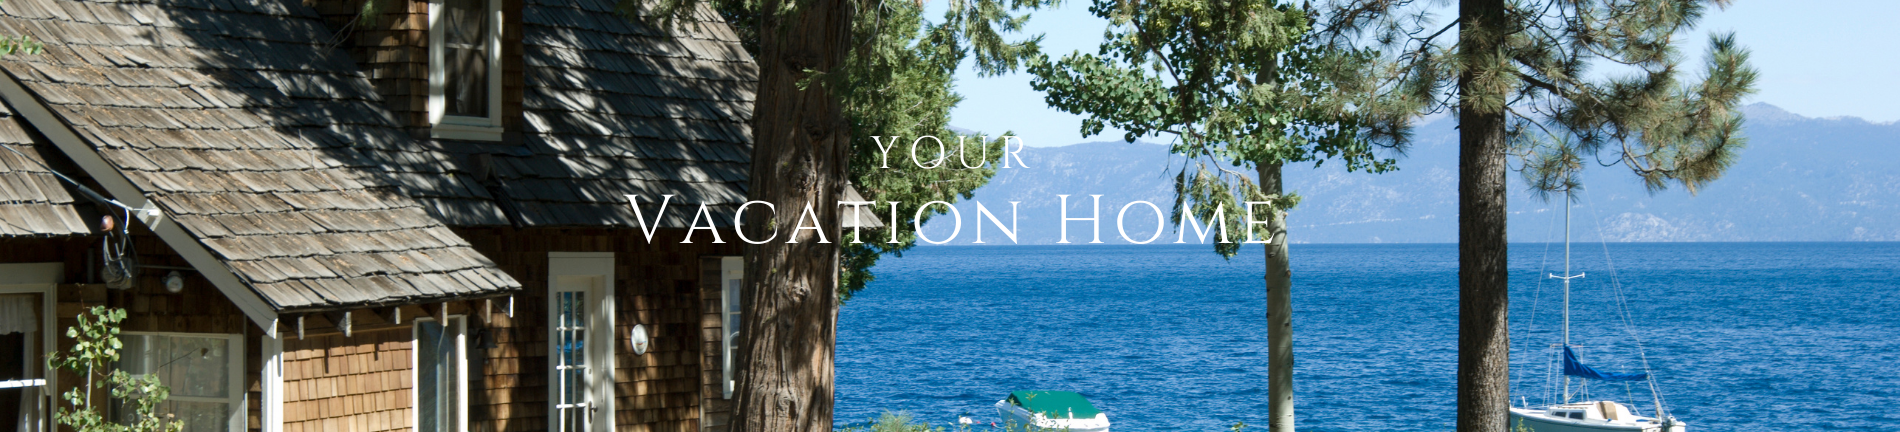 Your Vacation Home